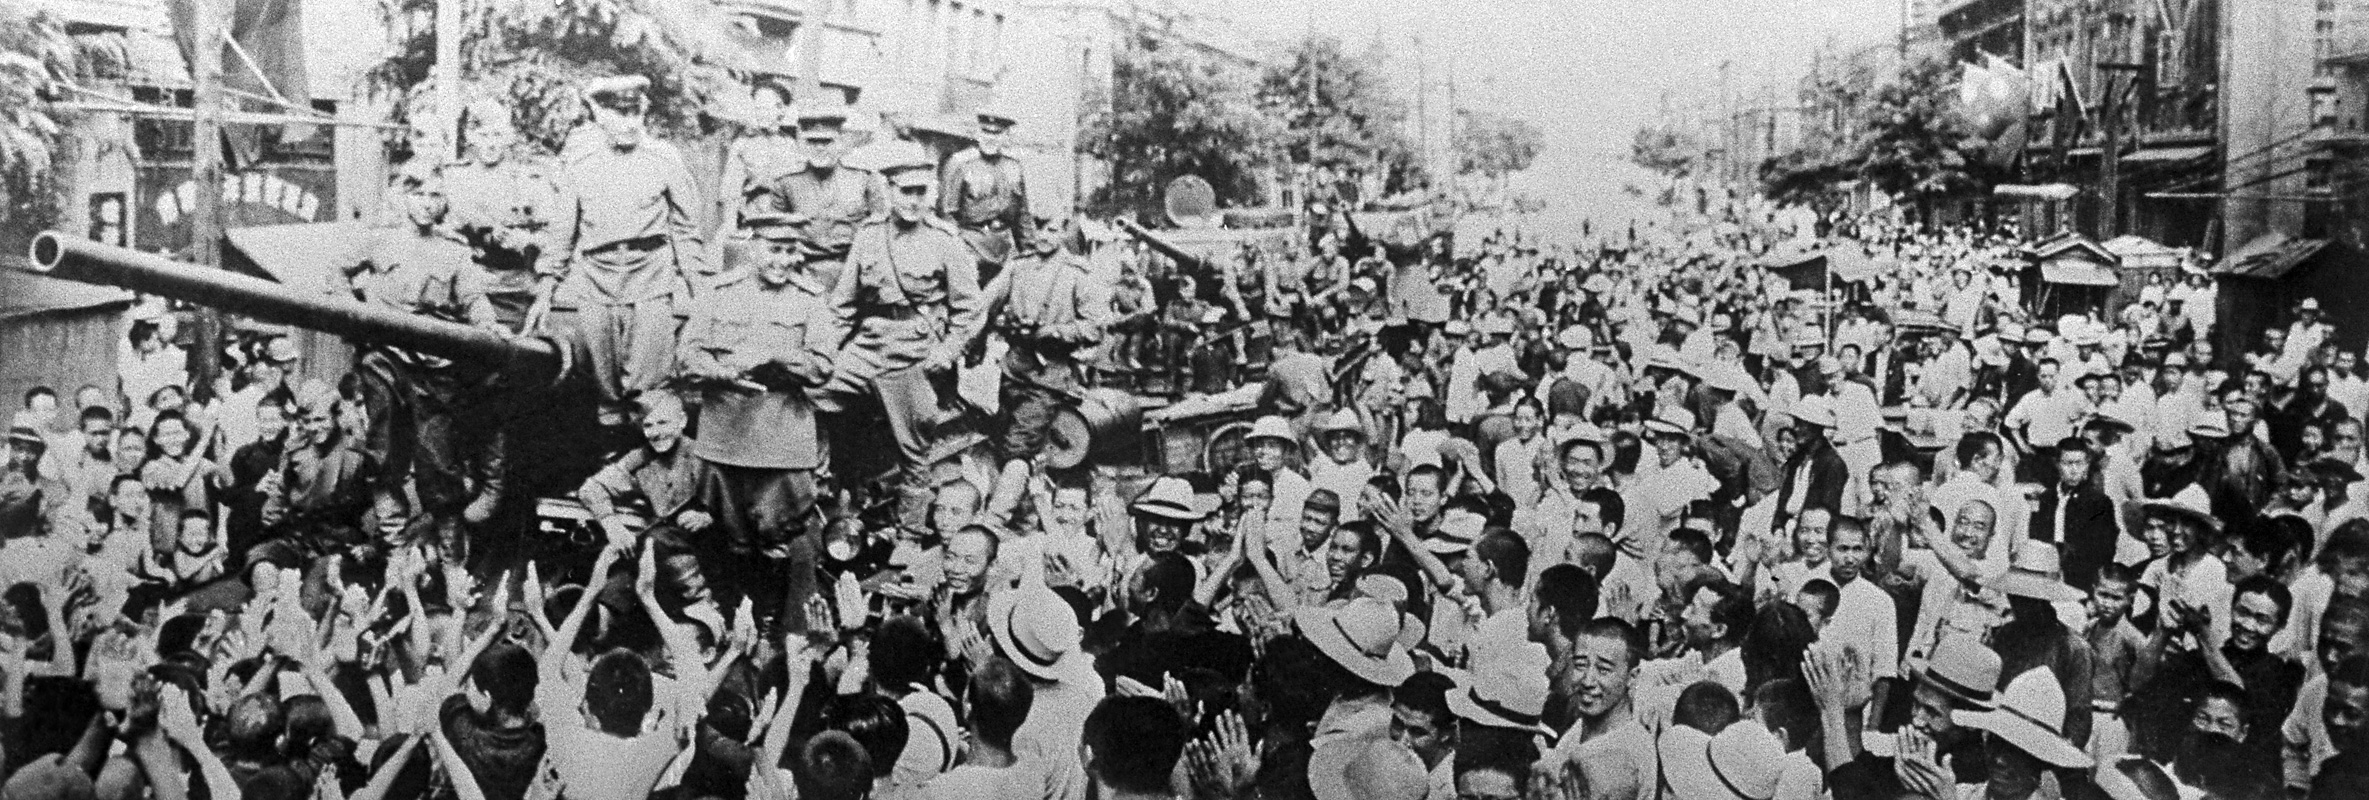 Manchuria, China. Locals greet Soviet liberators after Japan's surrender on Sept. 2, 1945, ending World War II in the Pacific. Source: